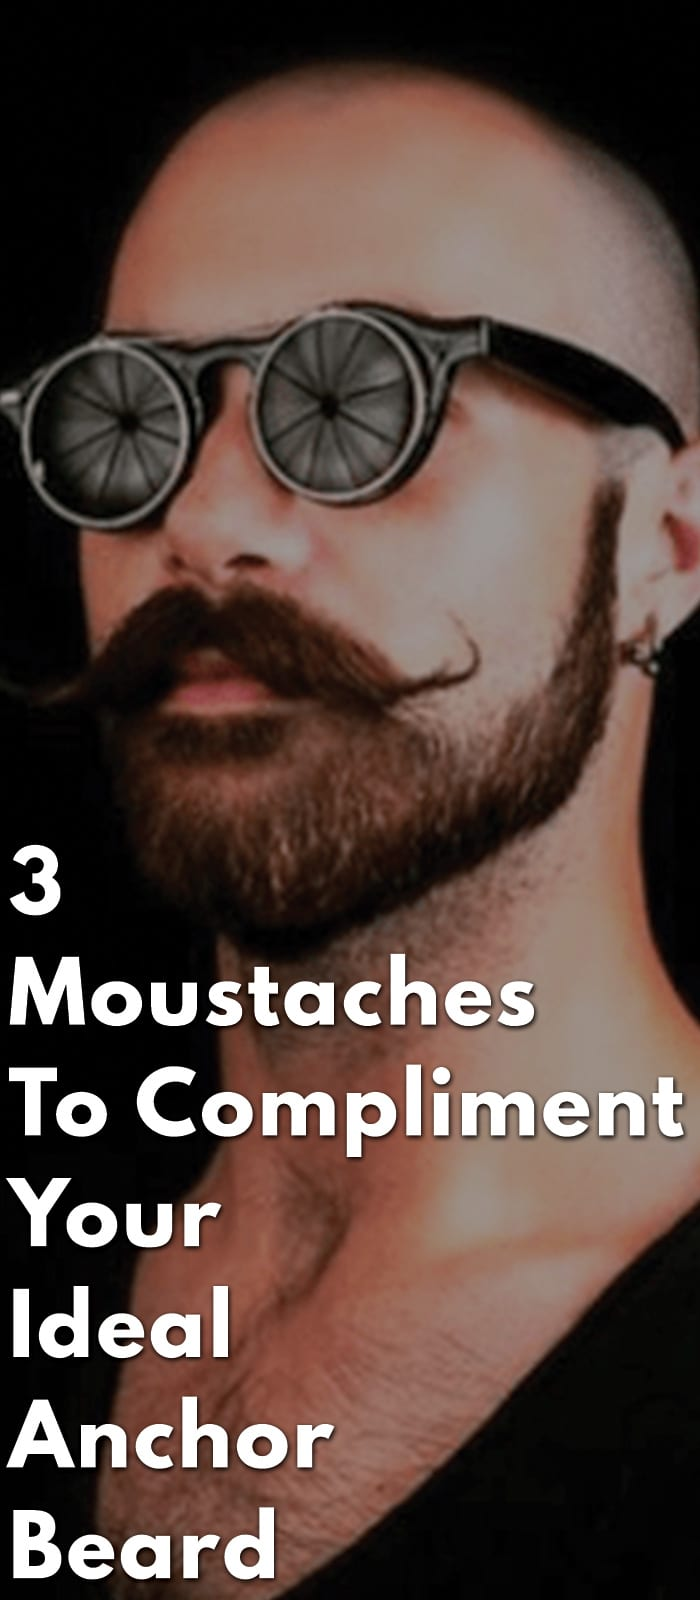 3-Moustaches-To-Compliment-Your-Ideal-Anchor-Beard.